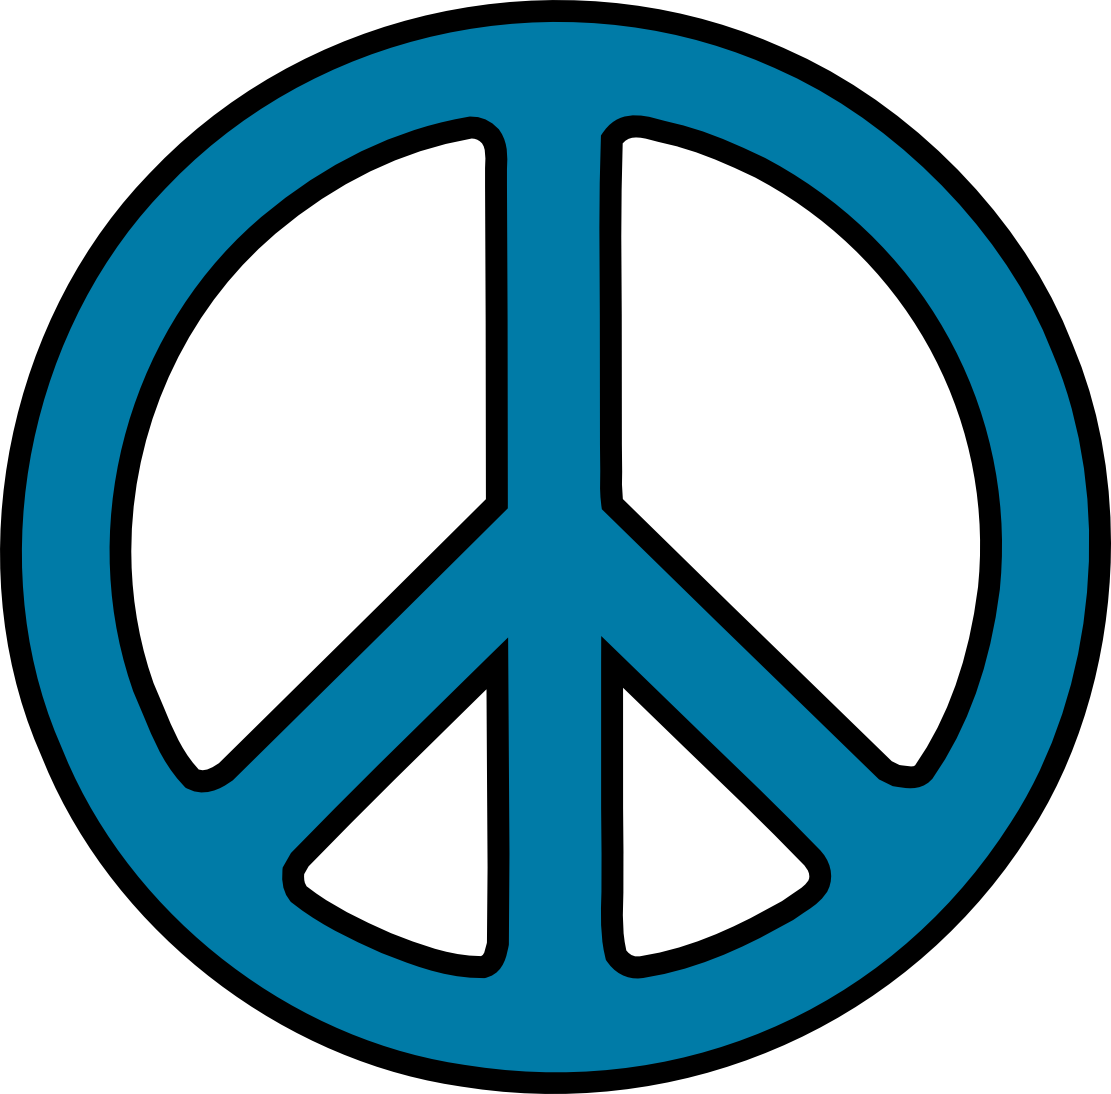 1970 s clipart peace sign clipart images gallery for free.